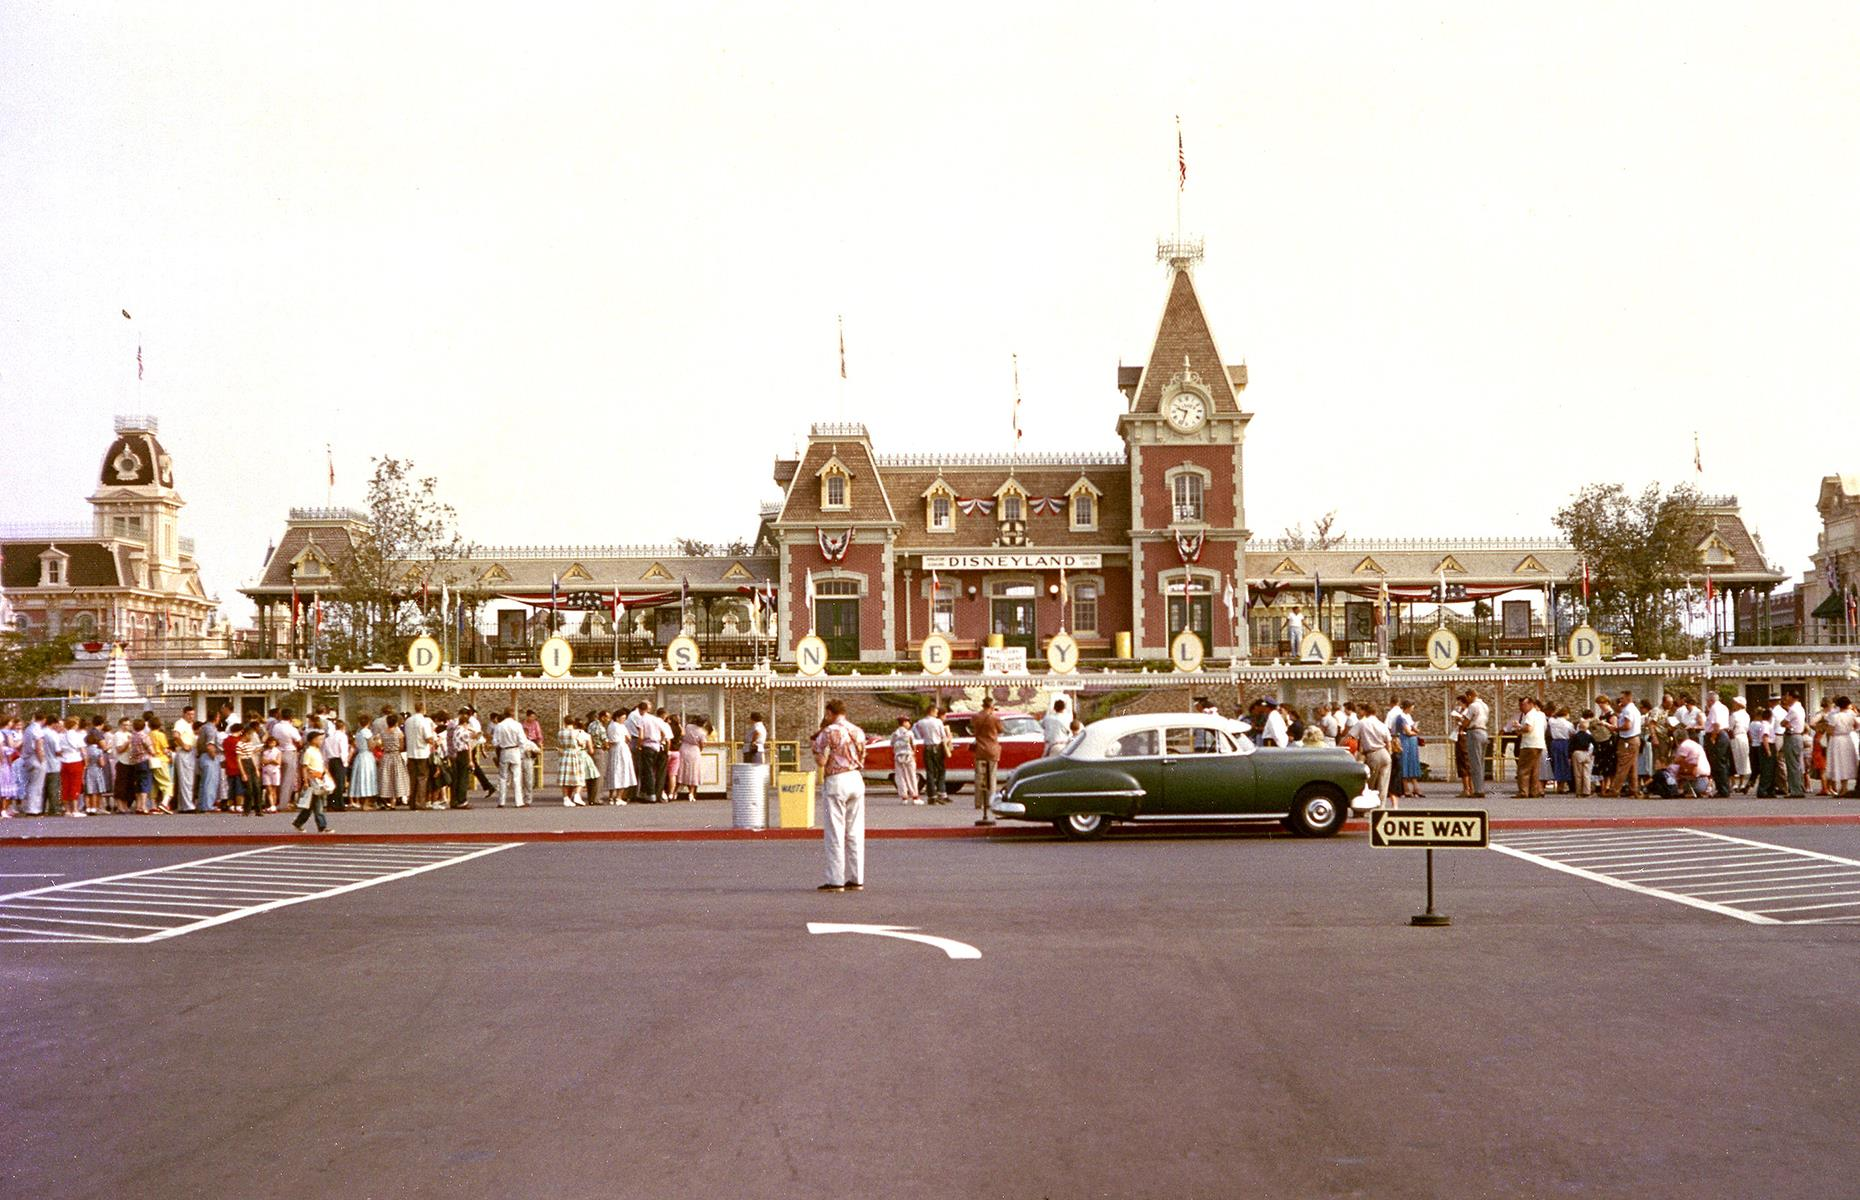 Slide 5 of 38: Such was the buzz around Disney's glittering new theme park that thousands more guests than the 6,000 invited turned up (reportedly some 28,000). This photo shows eager visitors queueing at Disneyland's main entrance on 17 July 1955. The huge influx of people meant the opening day didn't run quite as smoothly as planned, but luckily the public's fascination with this magical place was not marred.